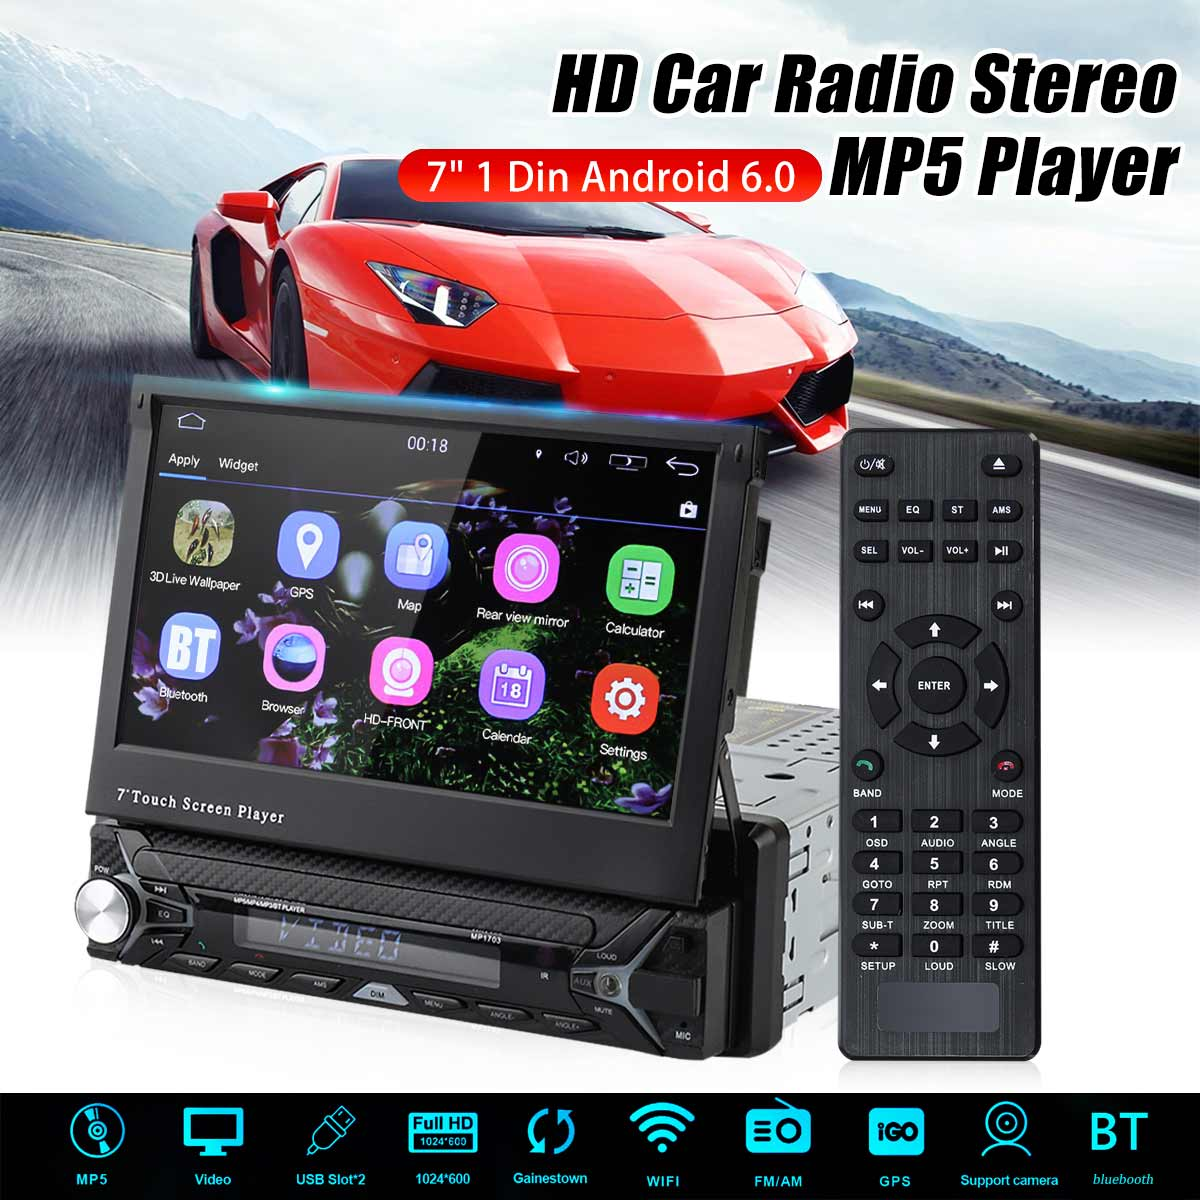 Car Multimedia Player Car Radio 7 1 Din Quad Core Android 6.0 Car DVD Player WIFI 3G GPS Stereo Player bluetooth Radio Indash